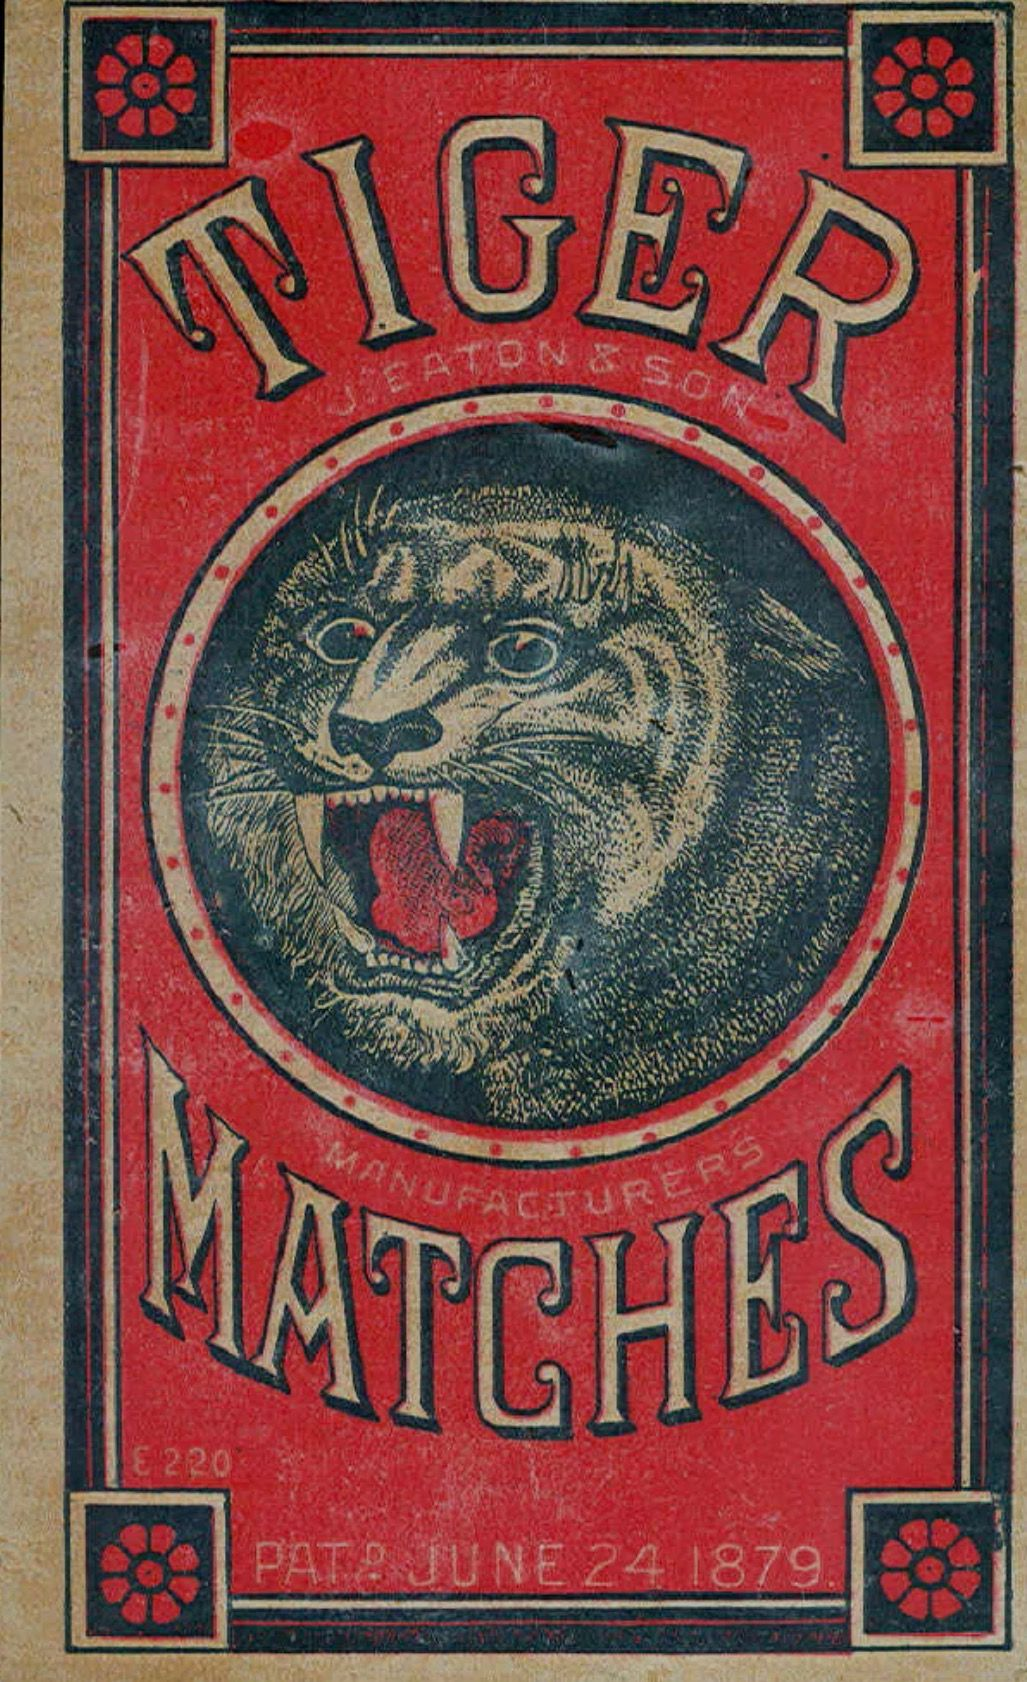 1880's trade card (rare) for Tiger matches. On eBay.